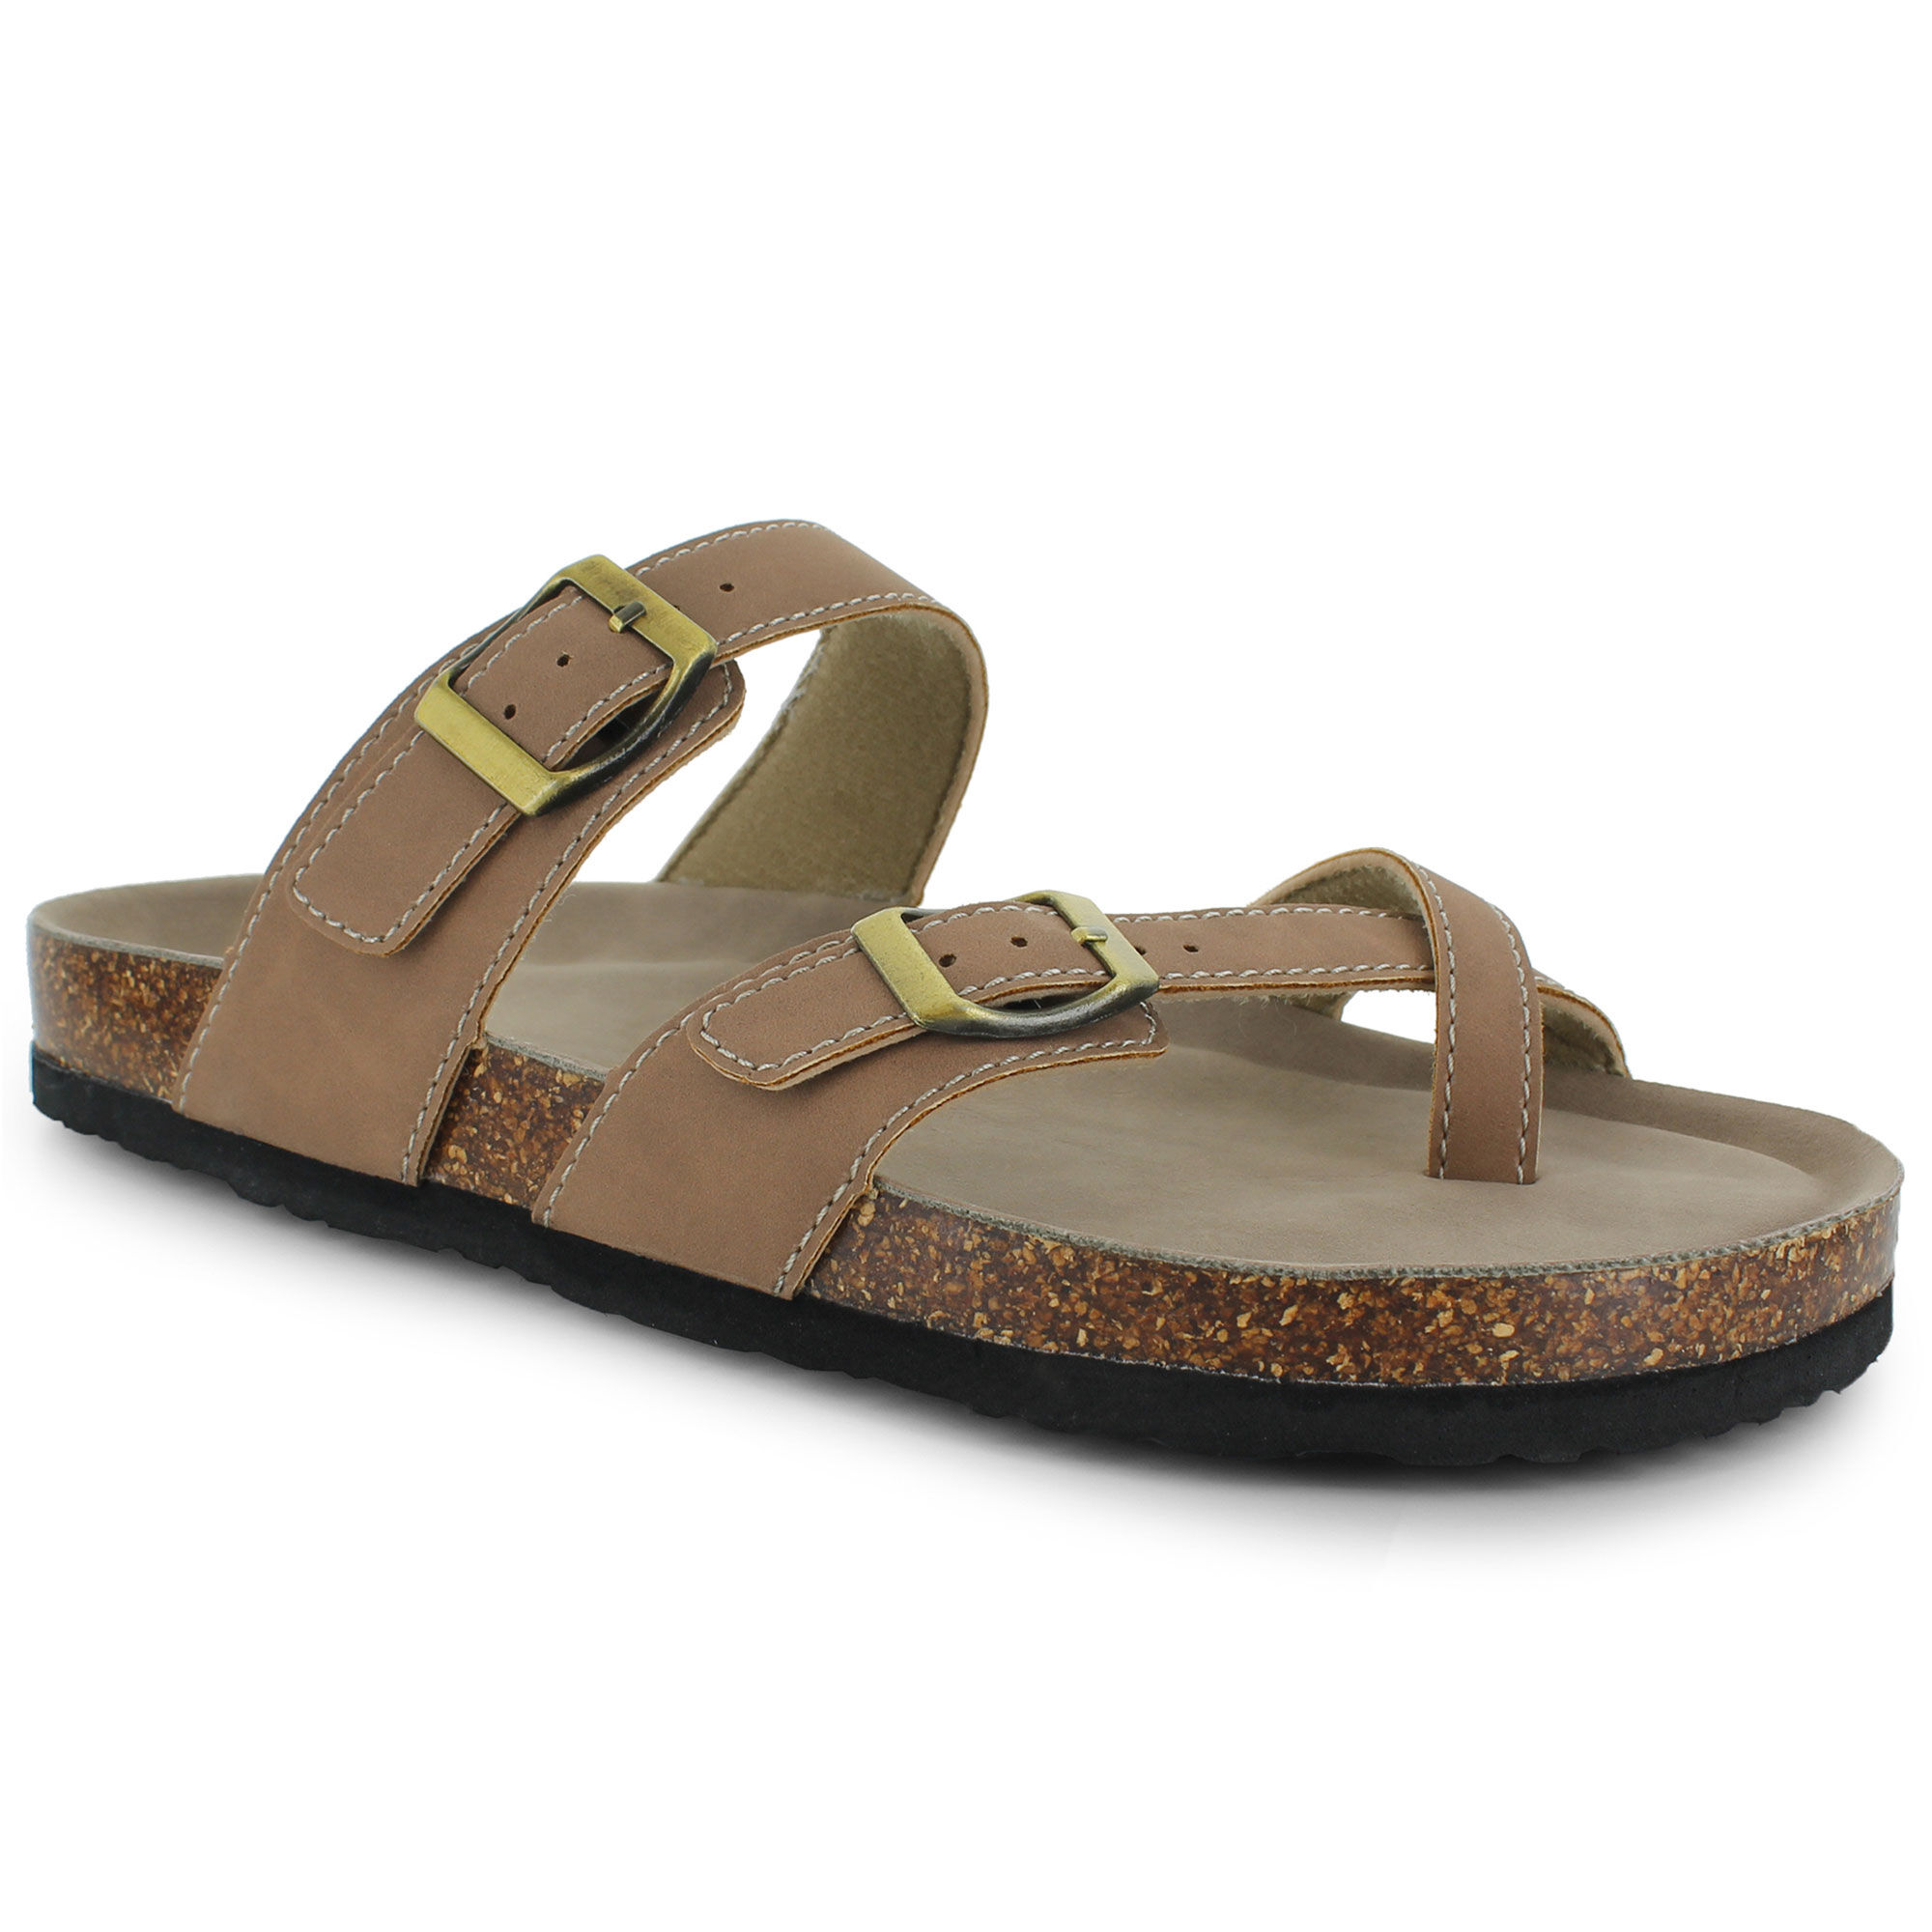 Women's Thong Sandals | Shop Now at